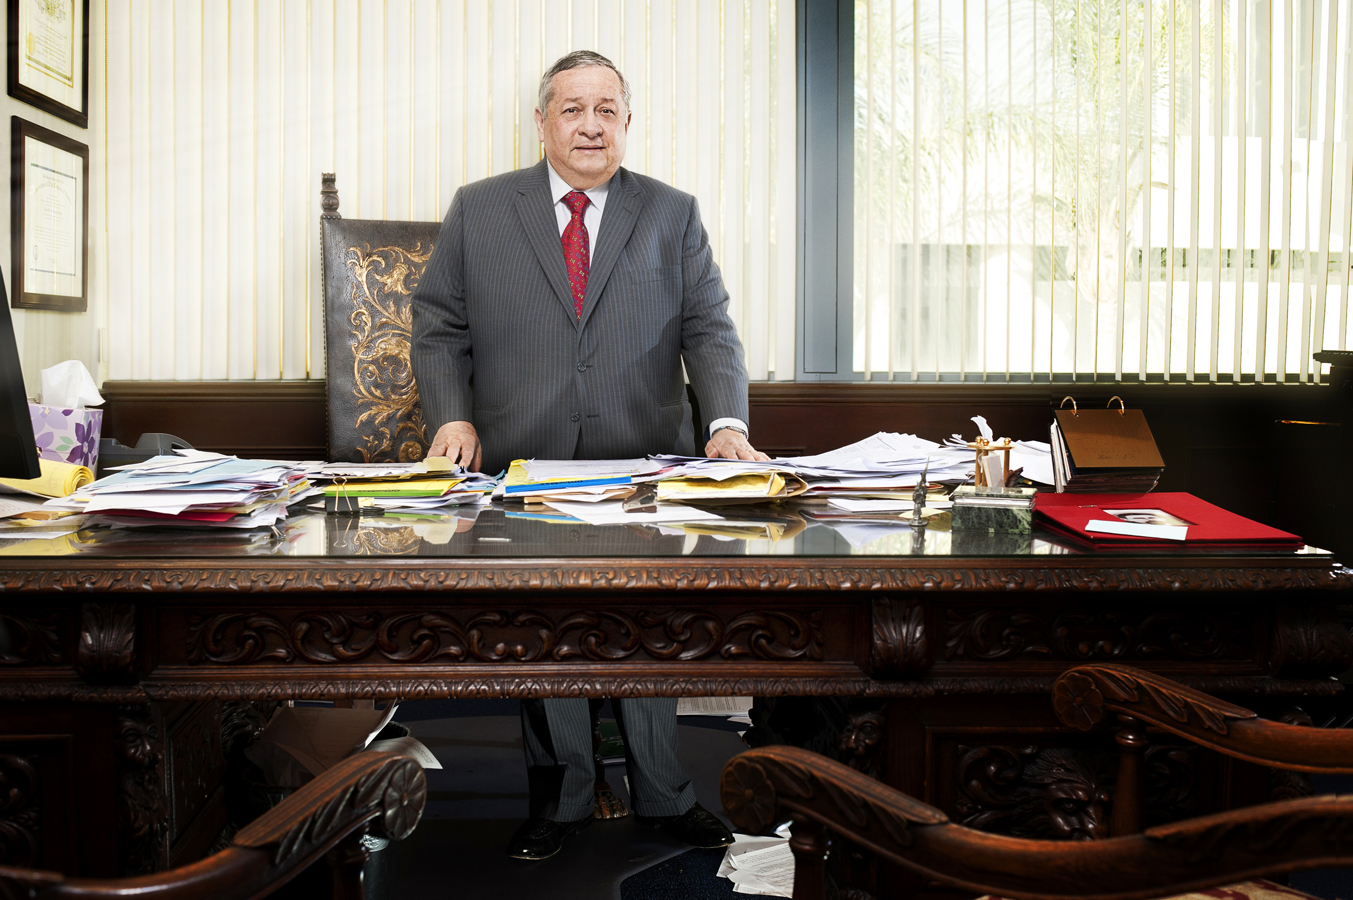 Man standing at a really cluttered desk.  Kenneth M. Ruggiano is a photographer in Tulsa Oklahoma